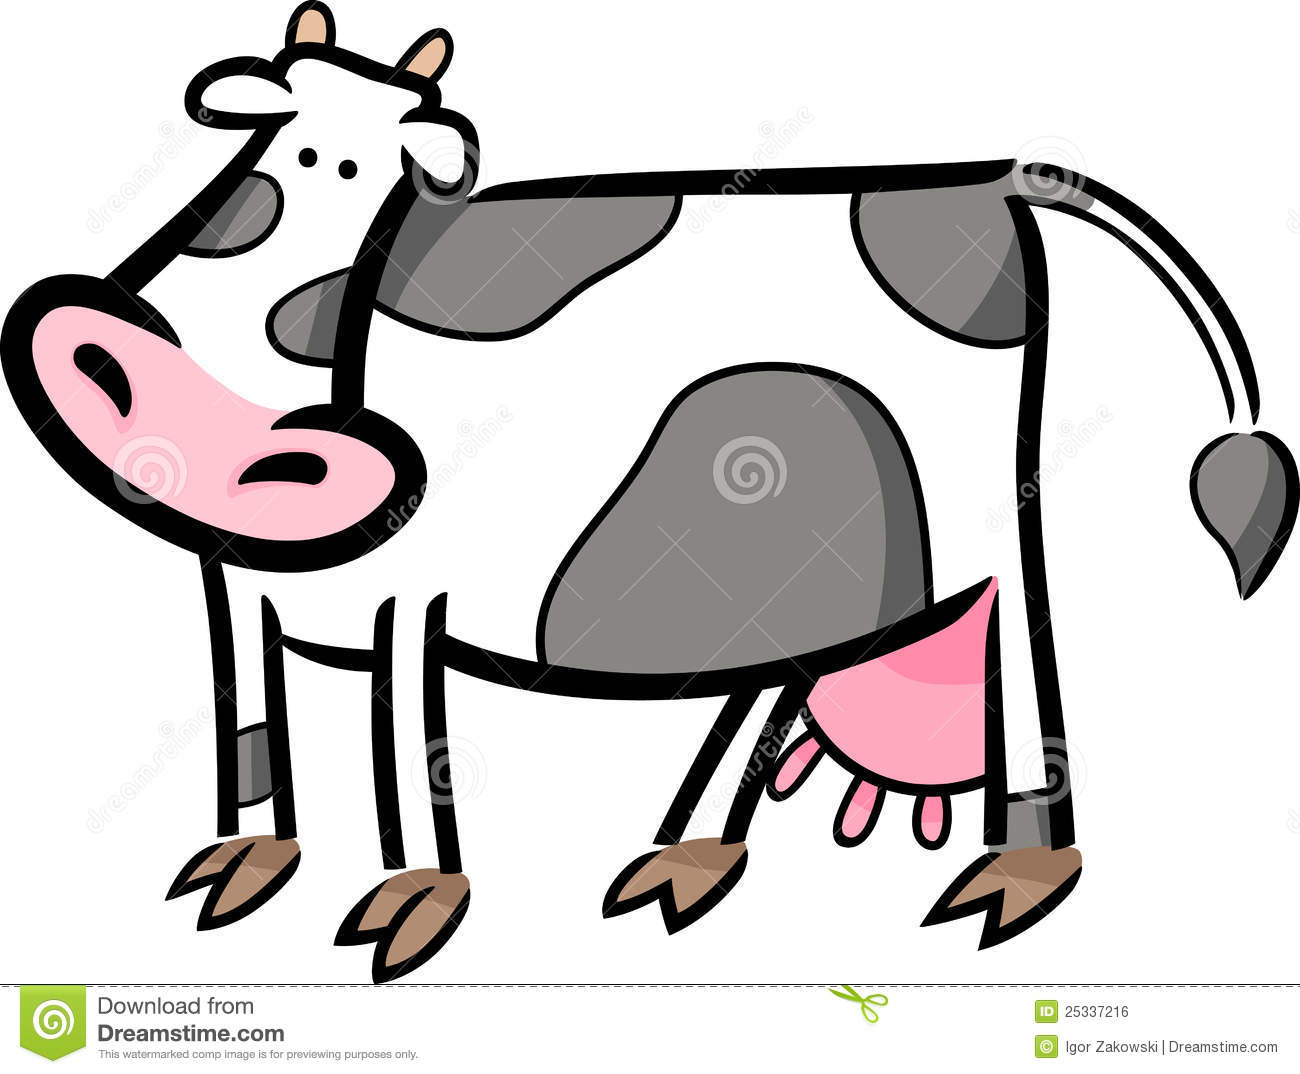 Cartoon doodle of farm cow stock vector. Illustration of drawing - 25337216